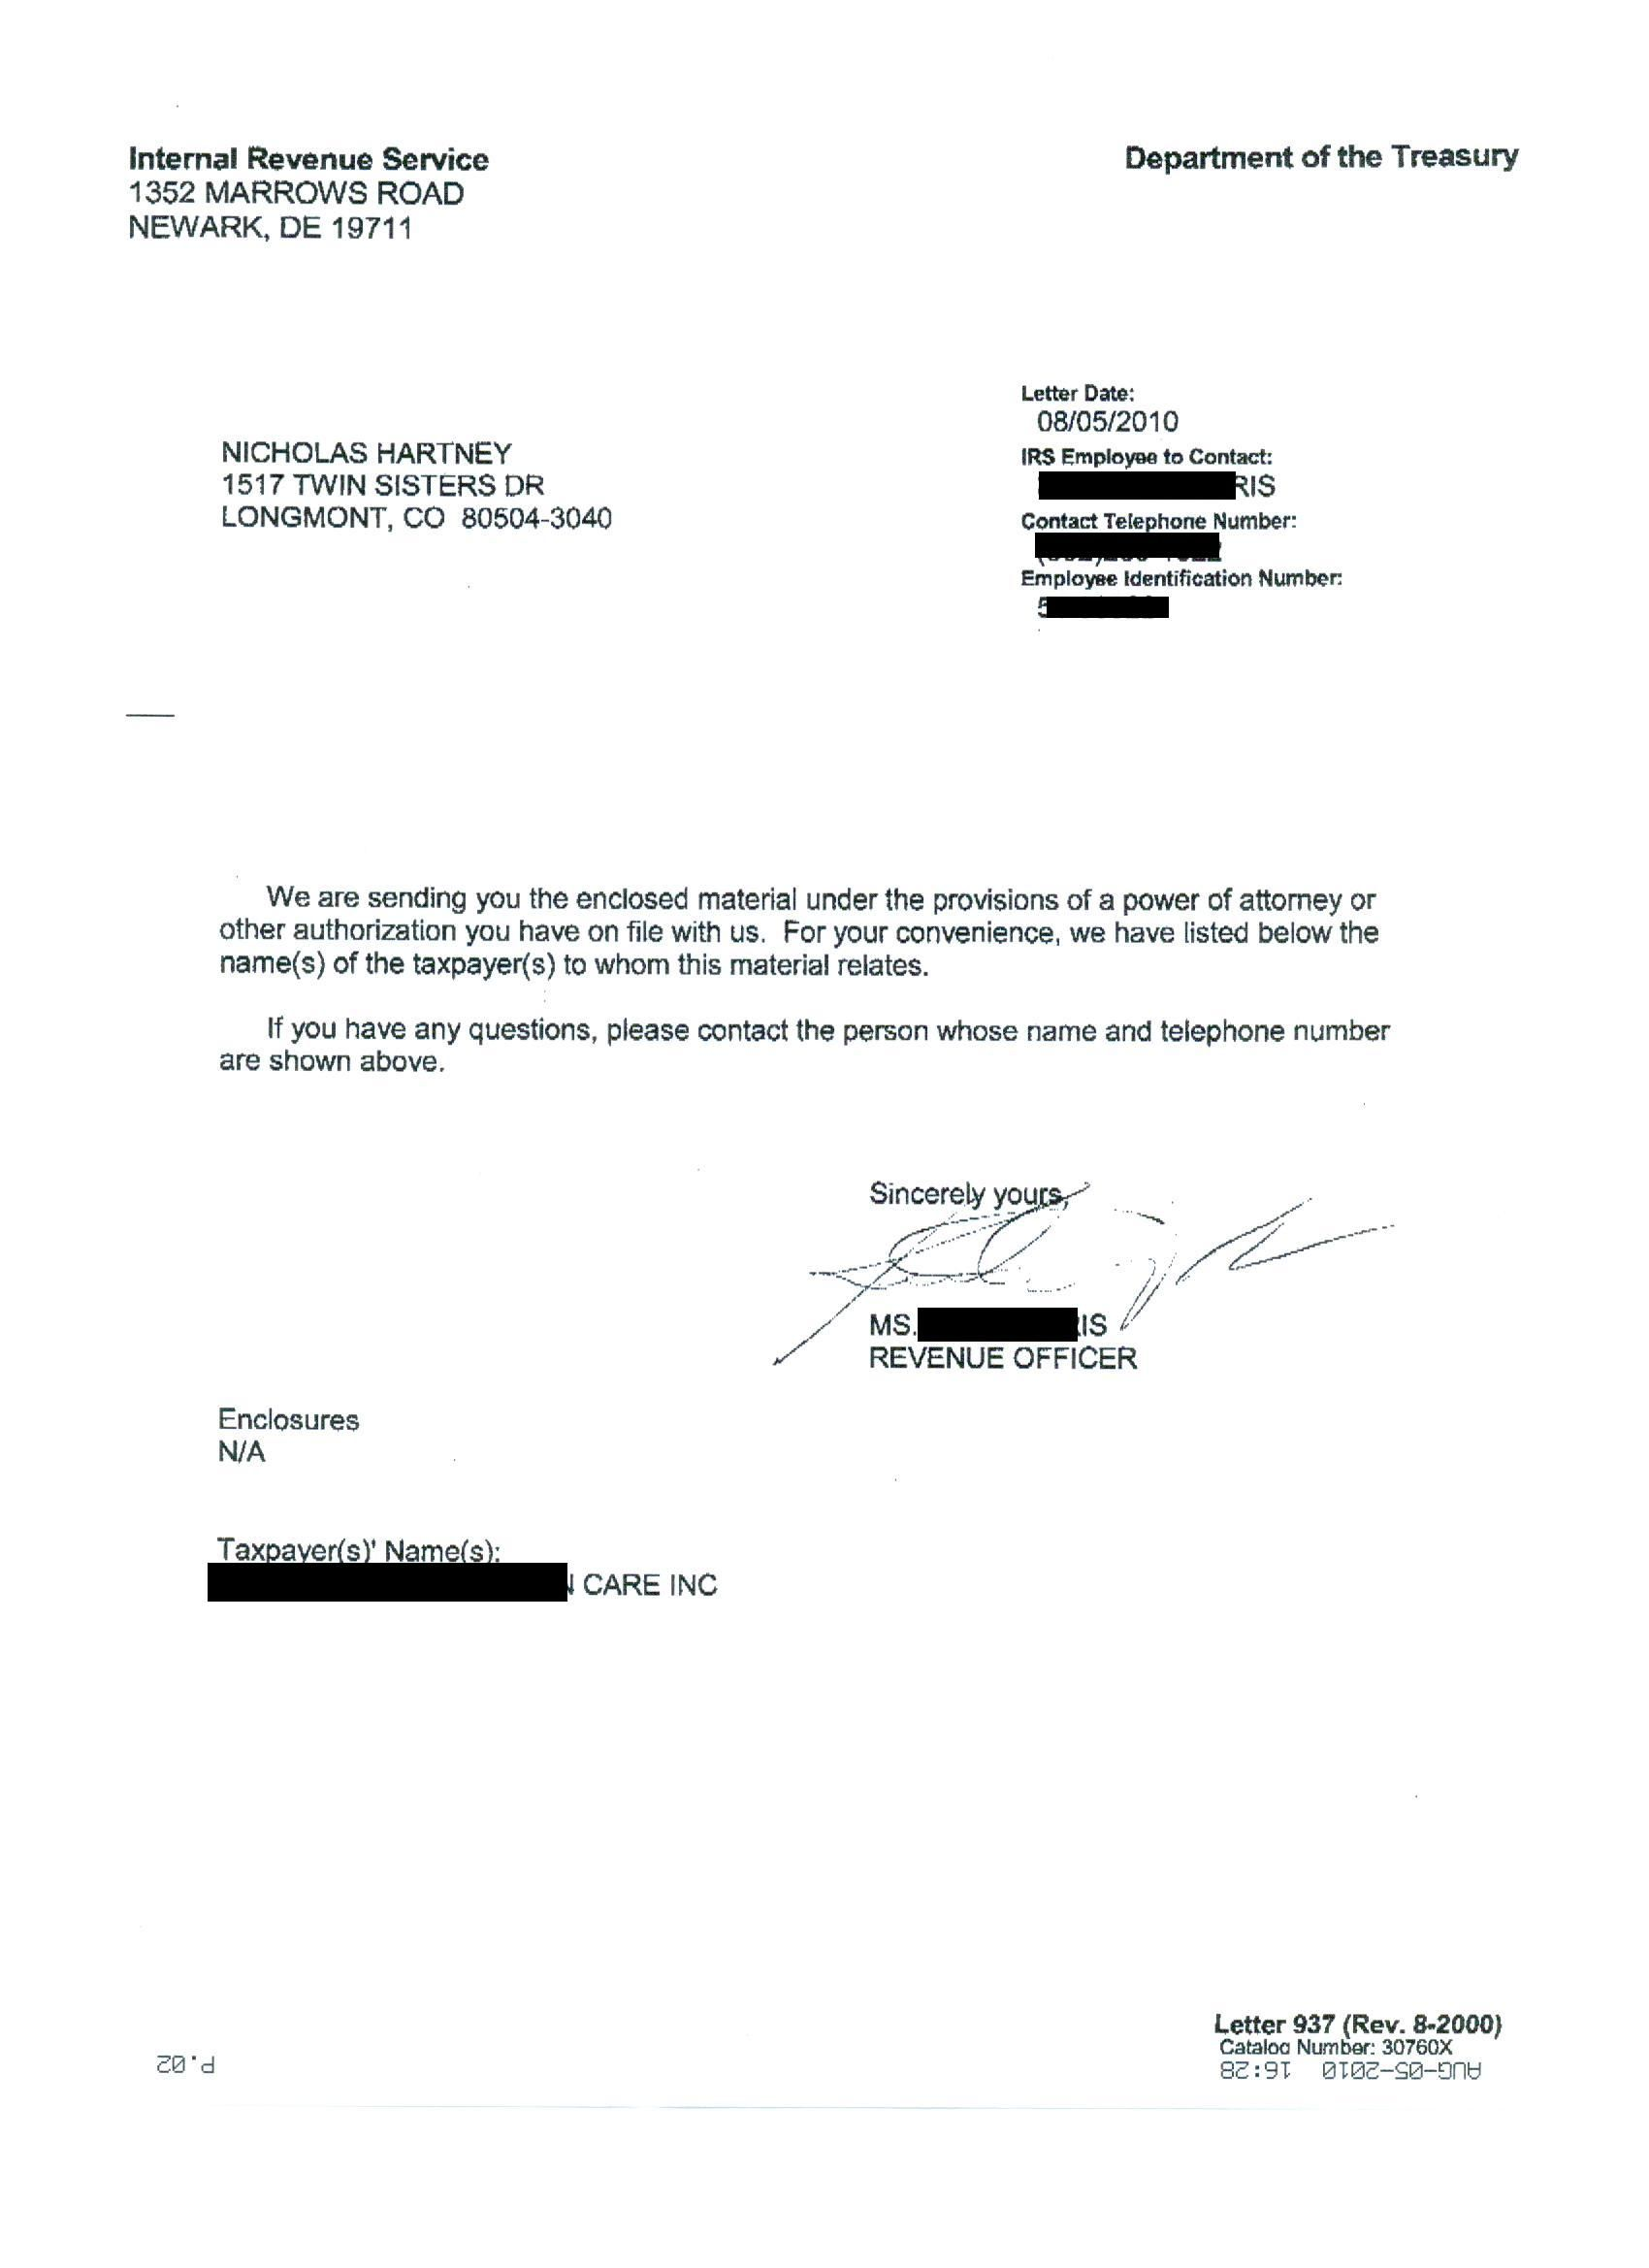 Certification Letter Request Irs Cover Tips Templates Wrcvfd With